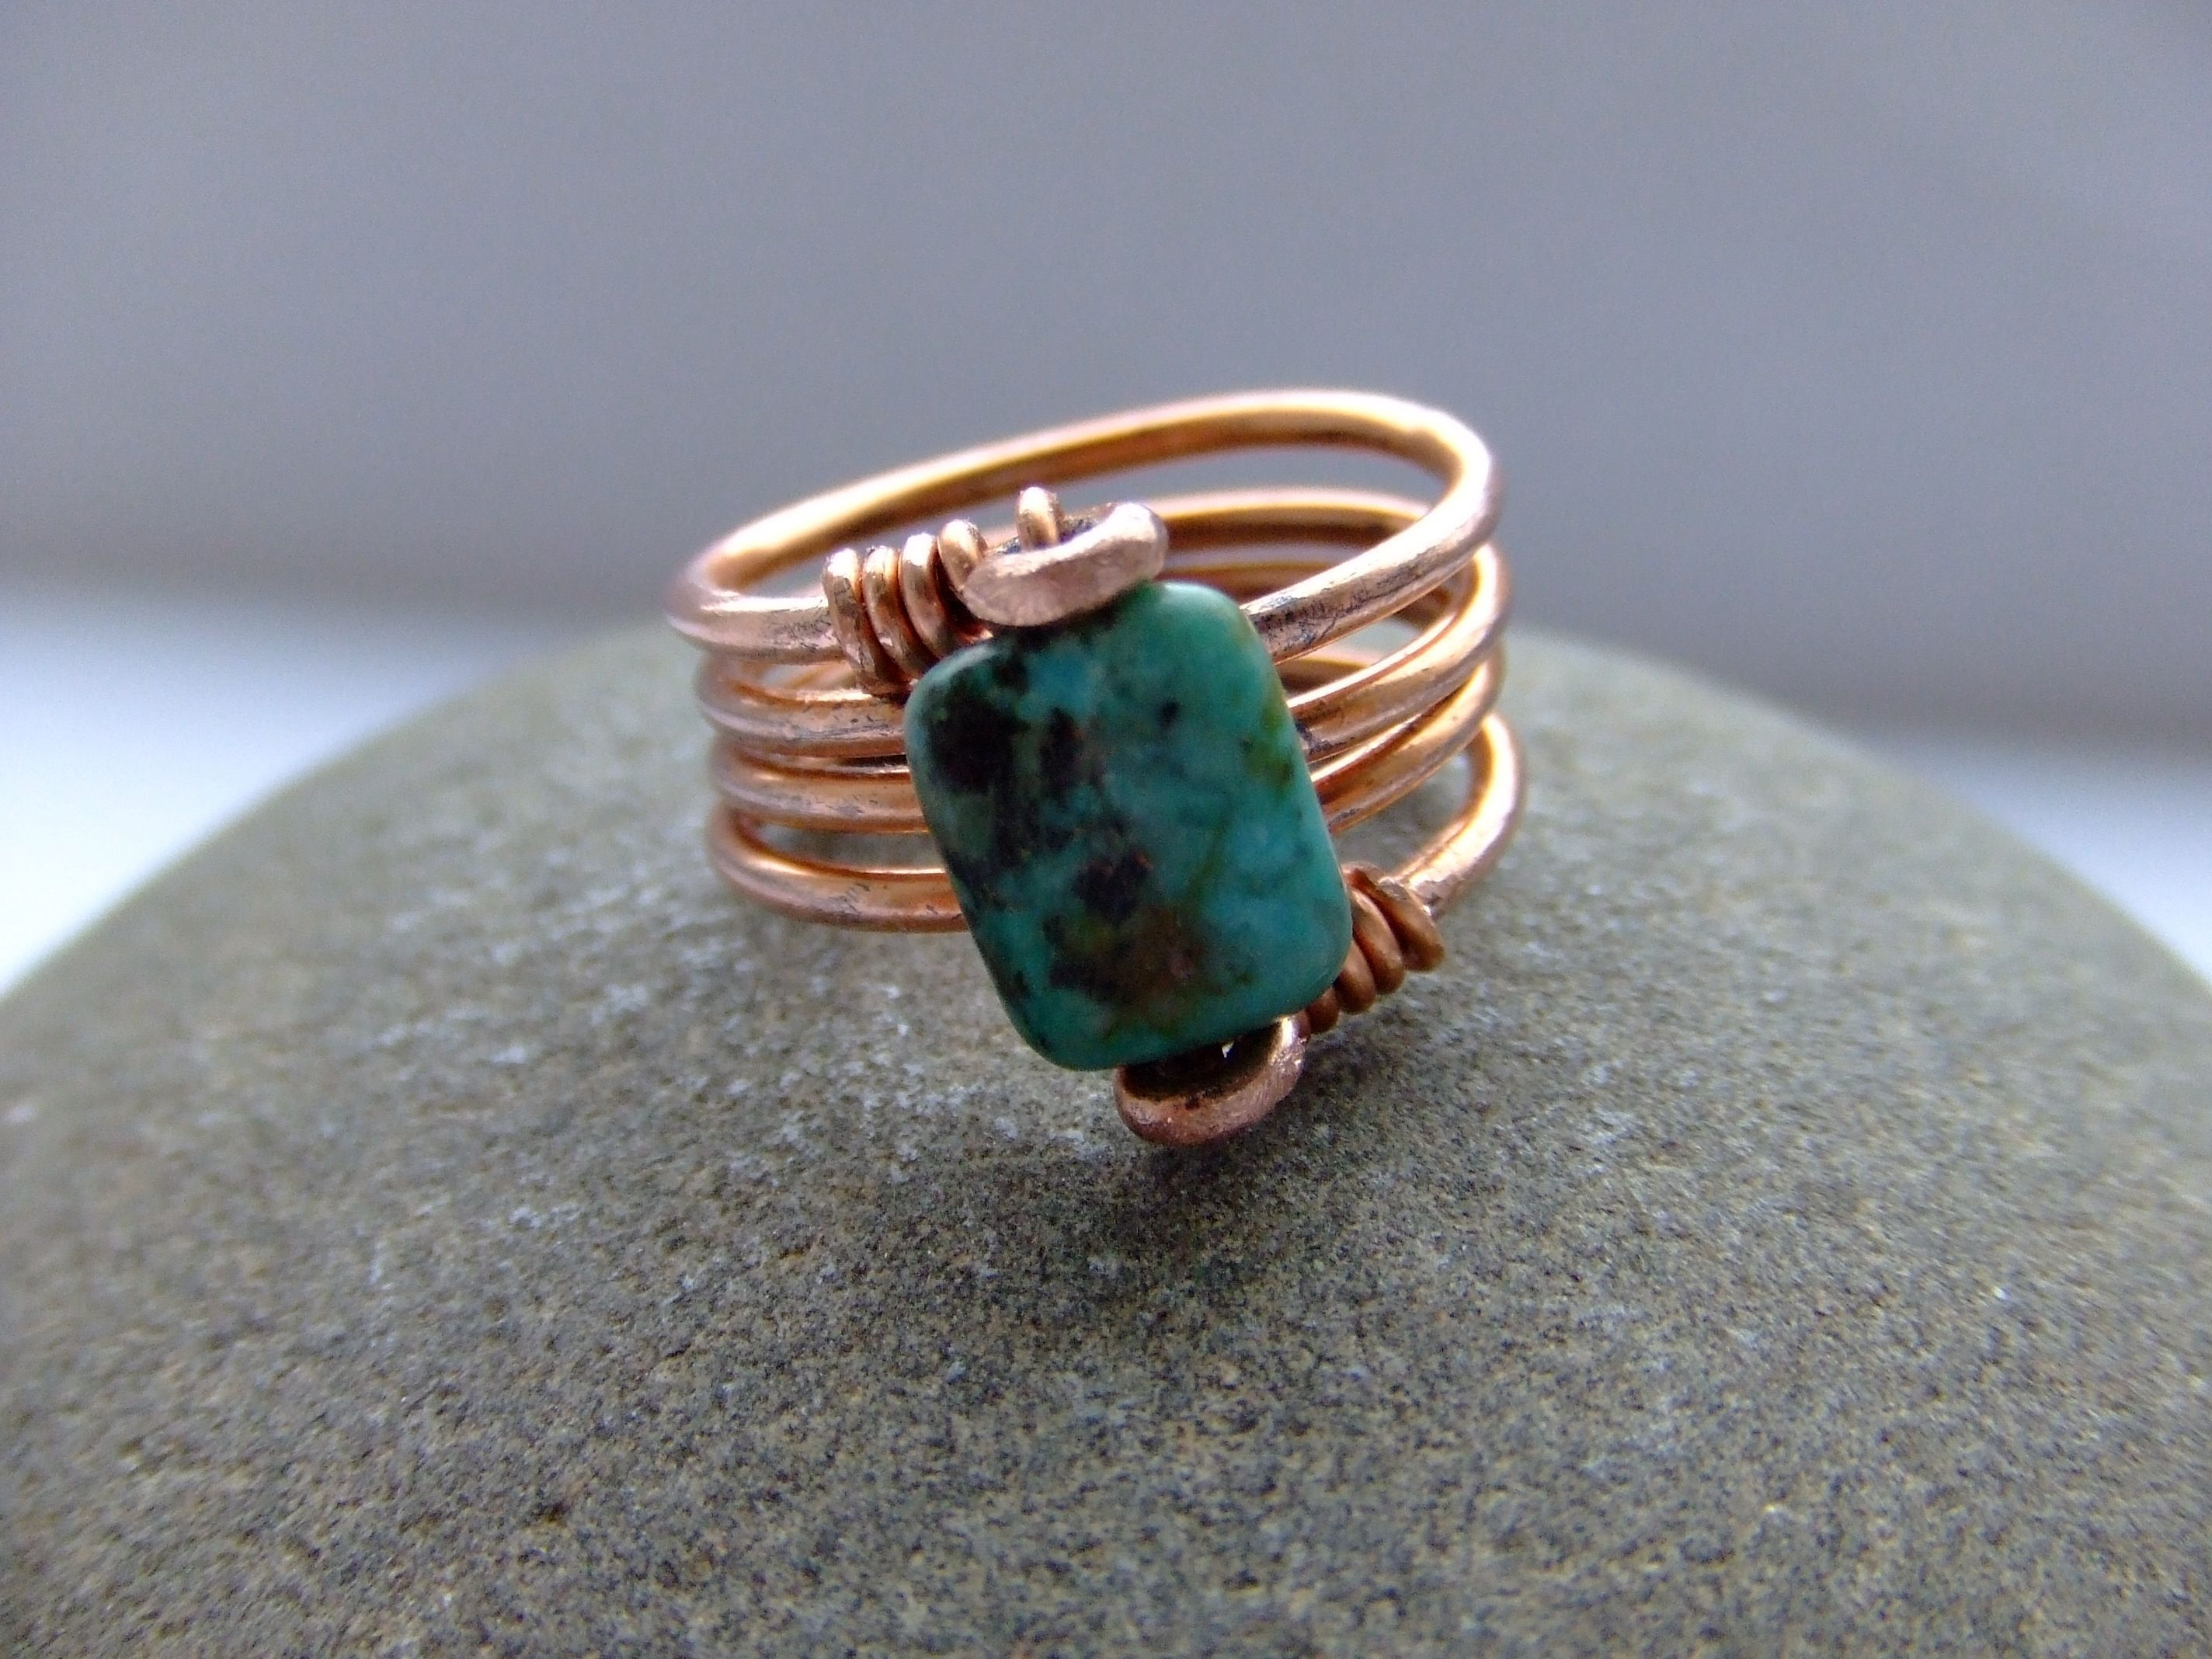 Gemstone Rings Wire Rings Green Jasper Wire Wrapped Stacking Rings Wire Jewelry Adjustable Ring Spiral Wire Ring Wire Wrapped